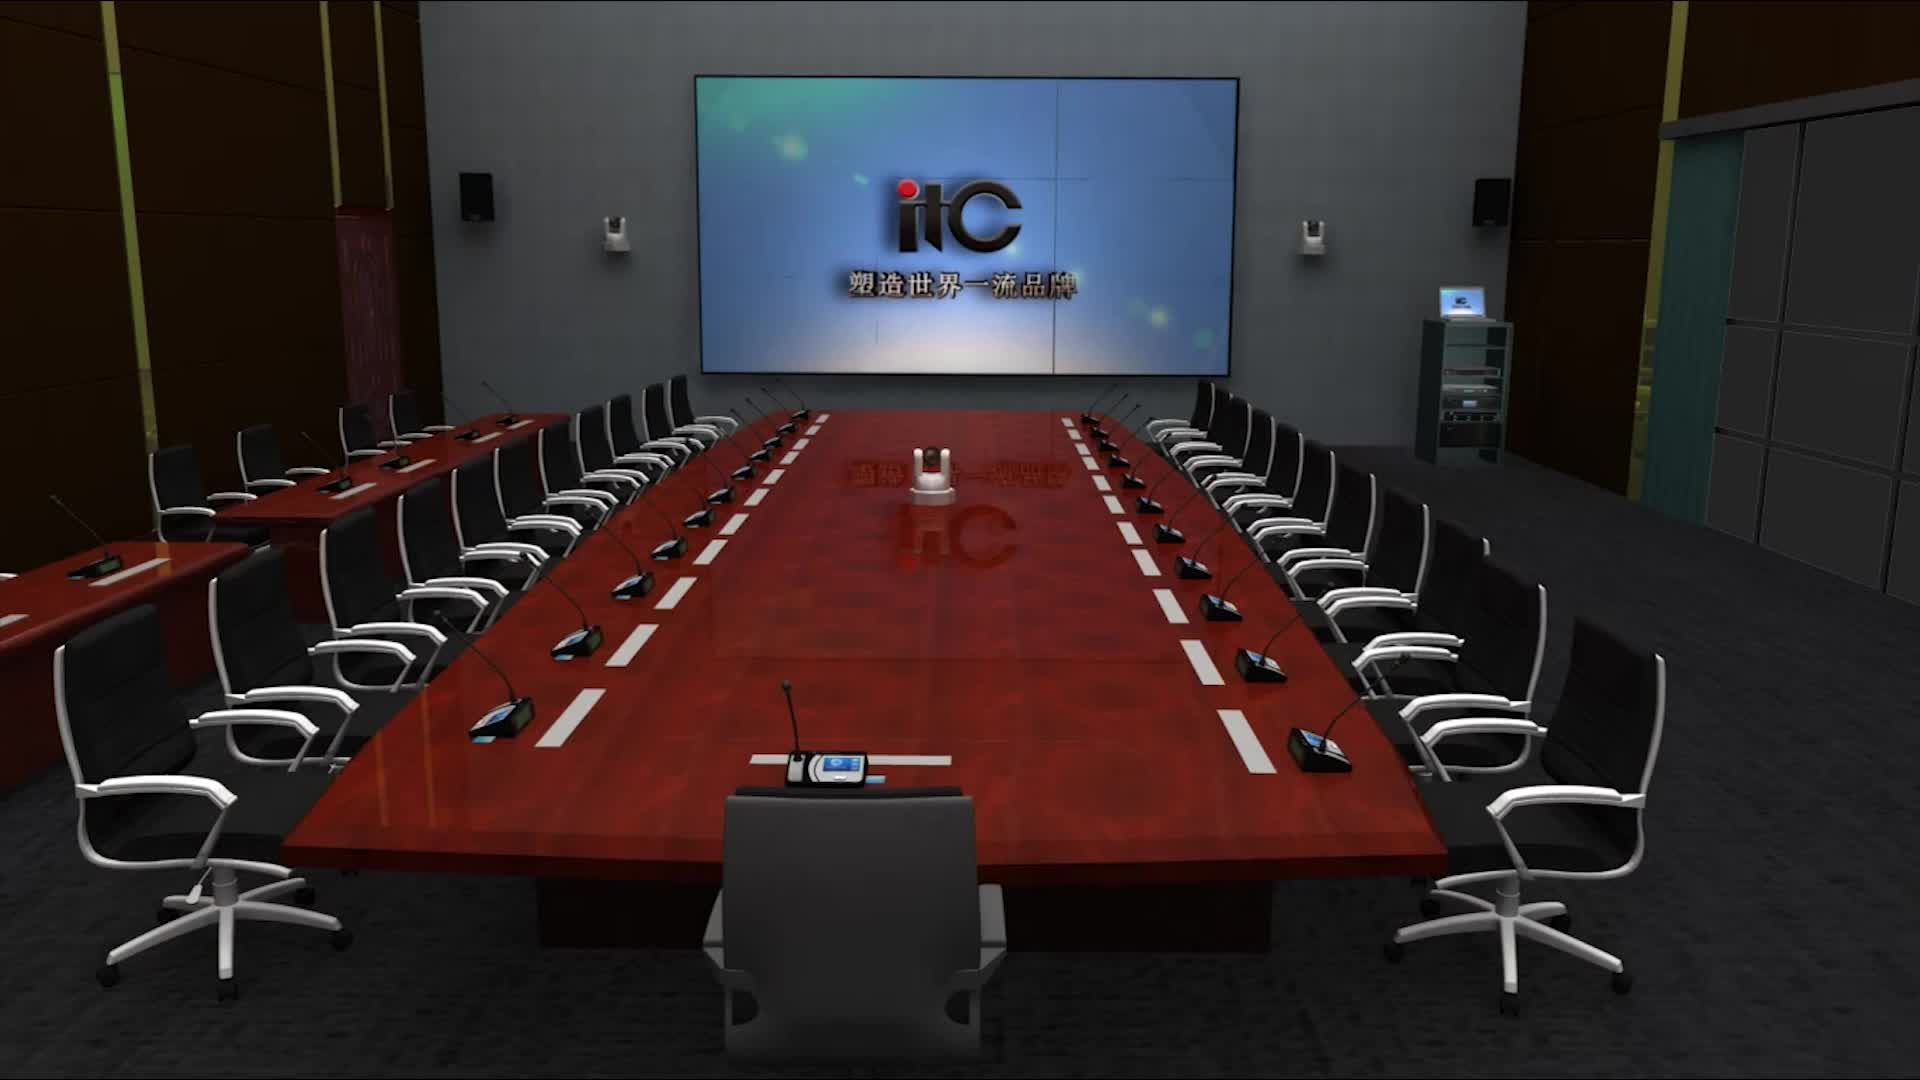 ITC TS-0605M Series Conference Room Audio System Digital Audio Conference System